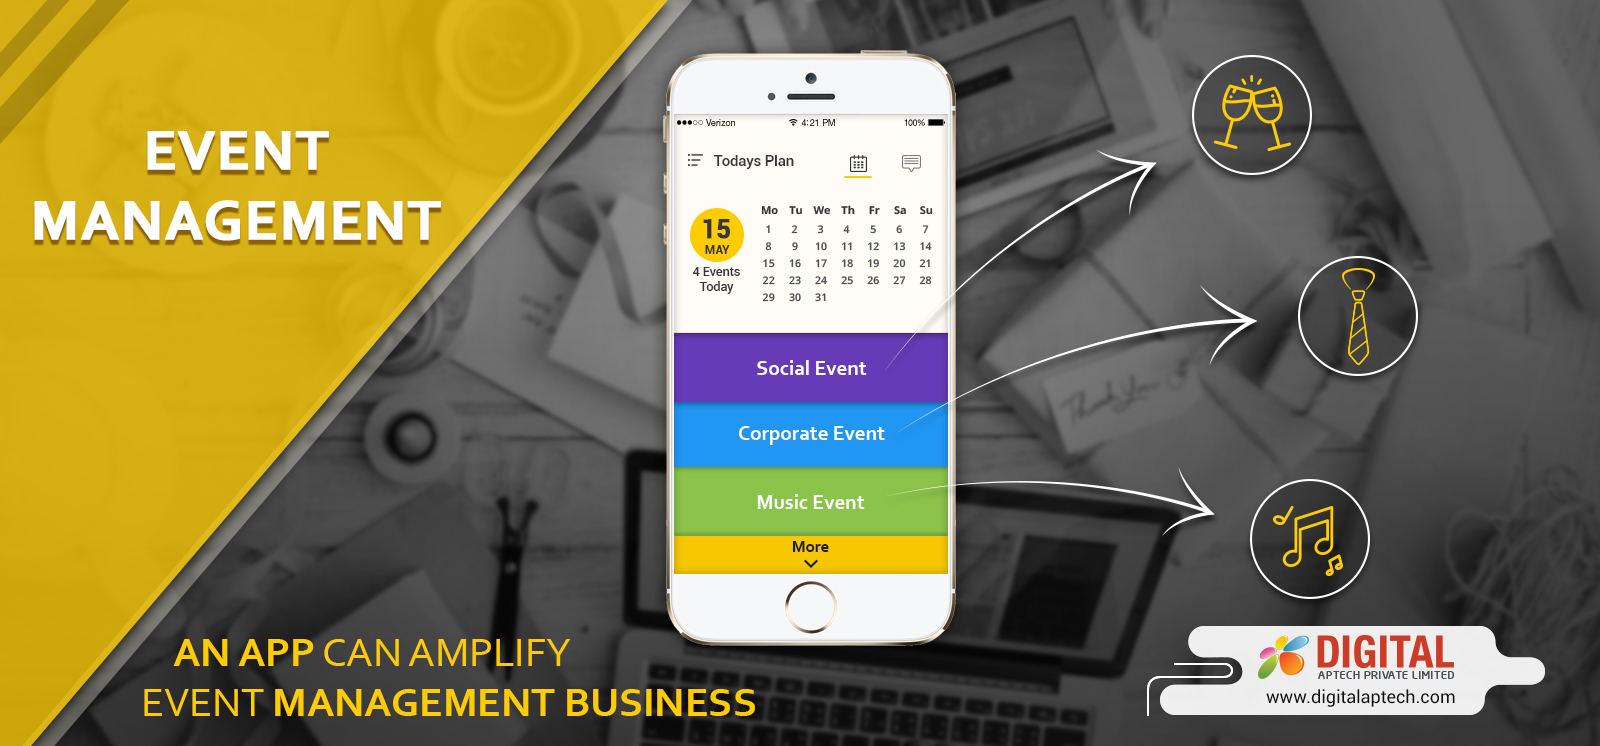 Importance of Mobile Apps for Event Management Business